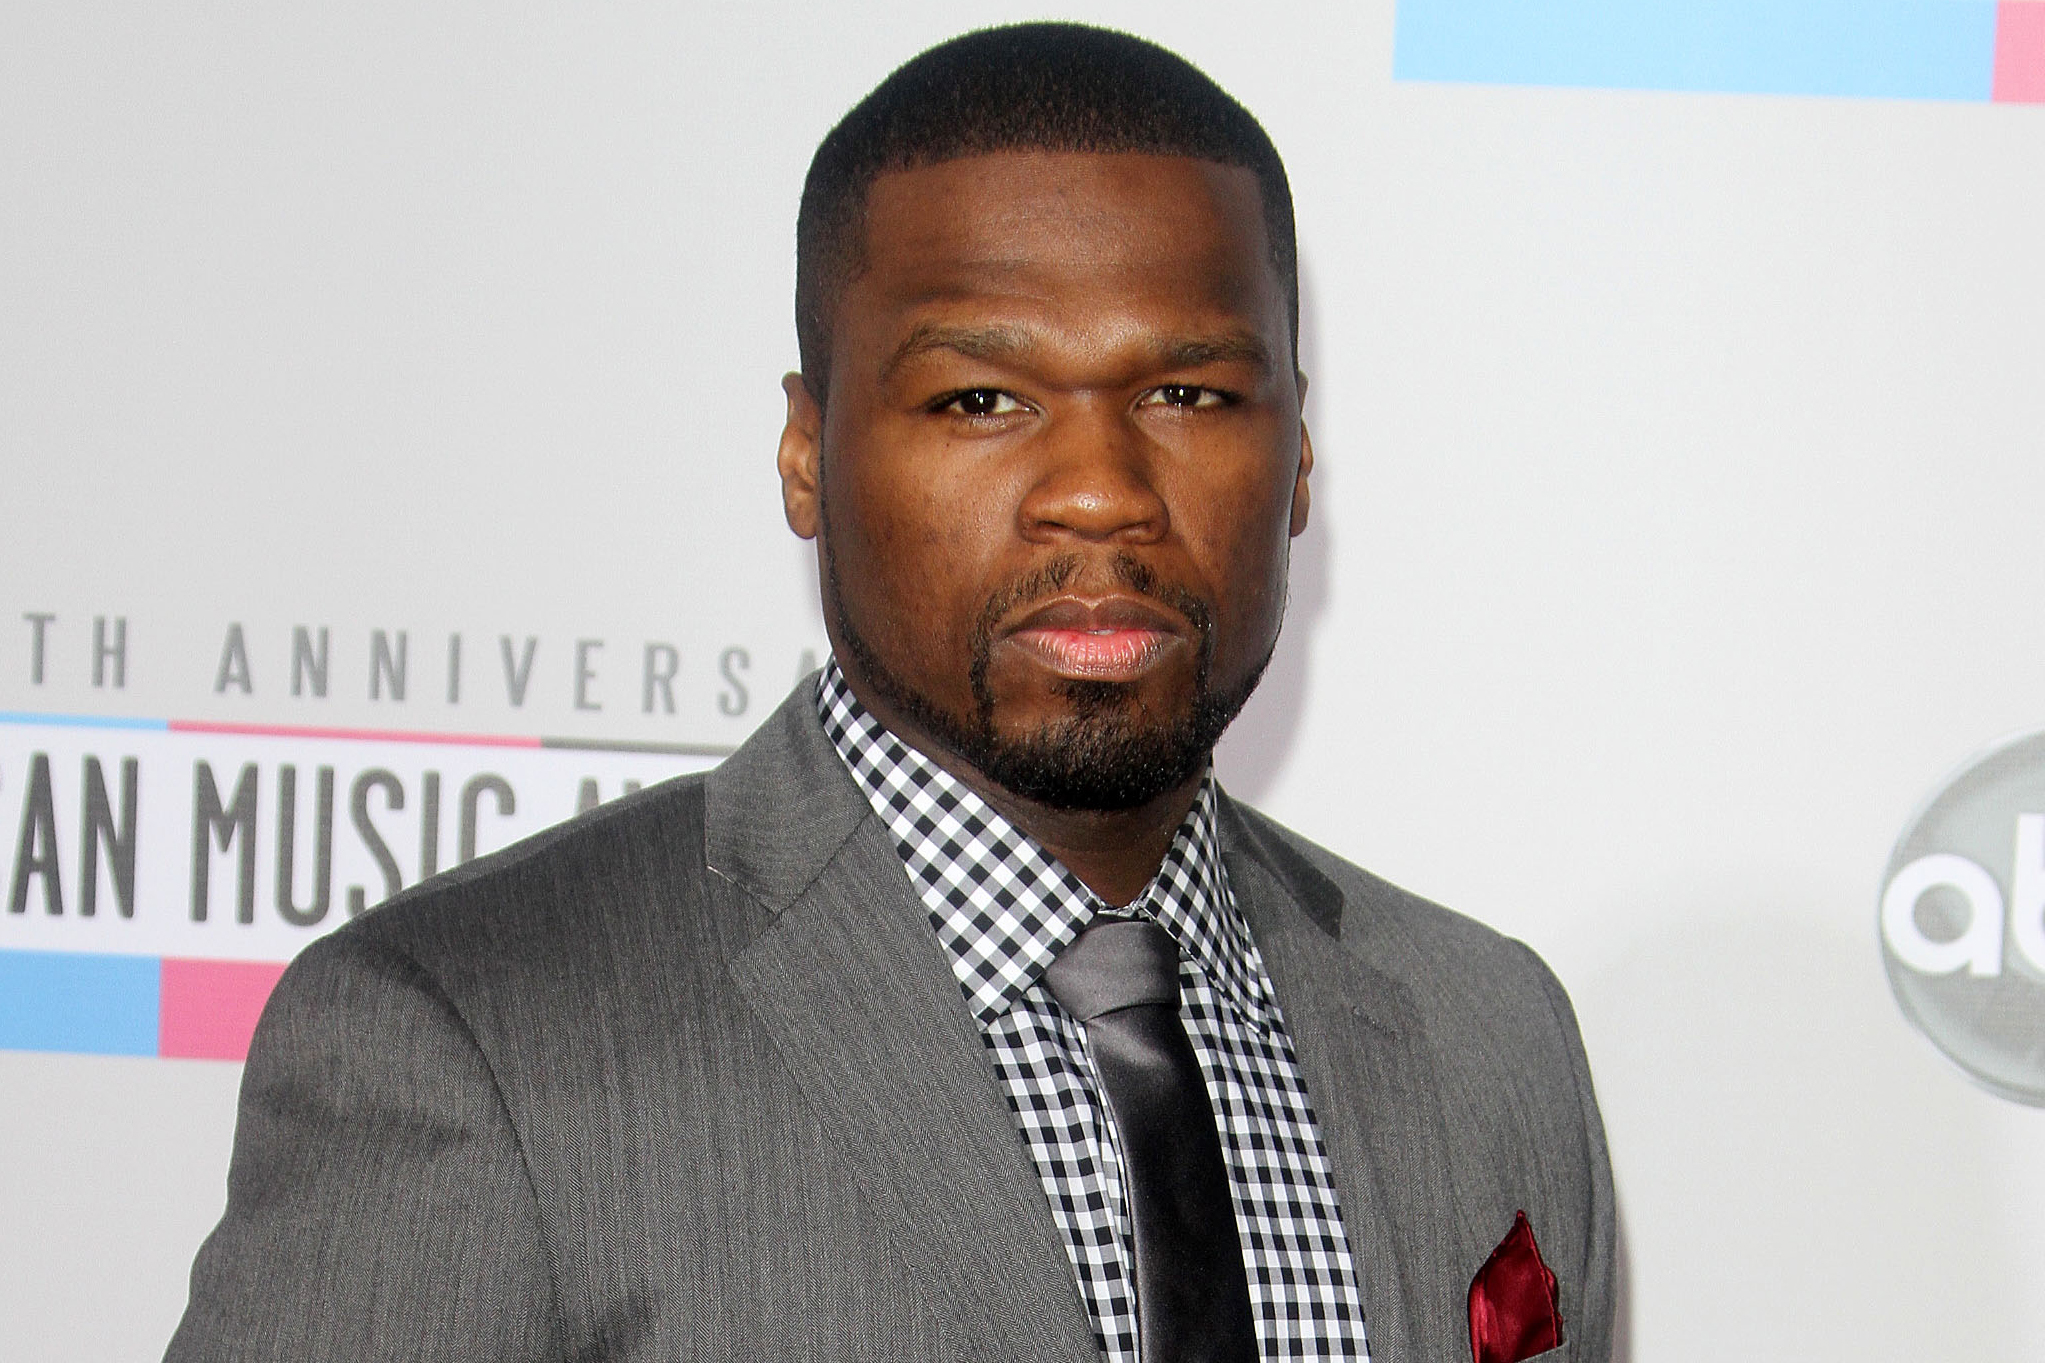 50 Cent arrested for indecent language